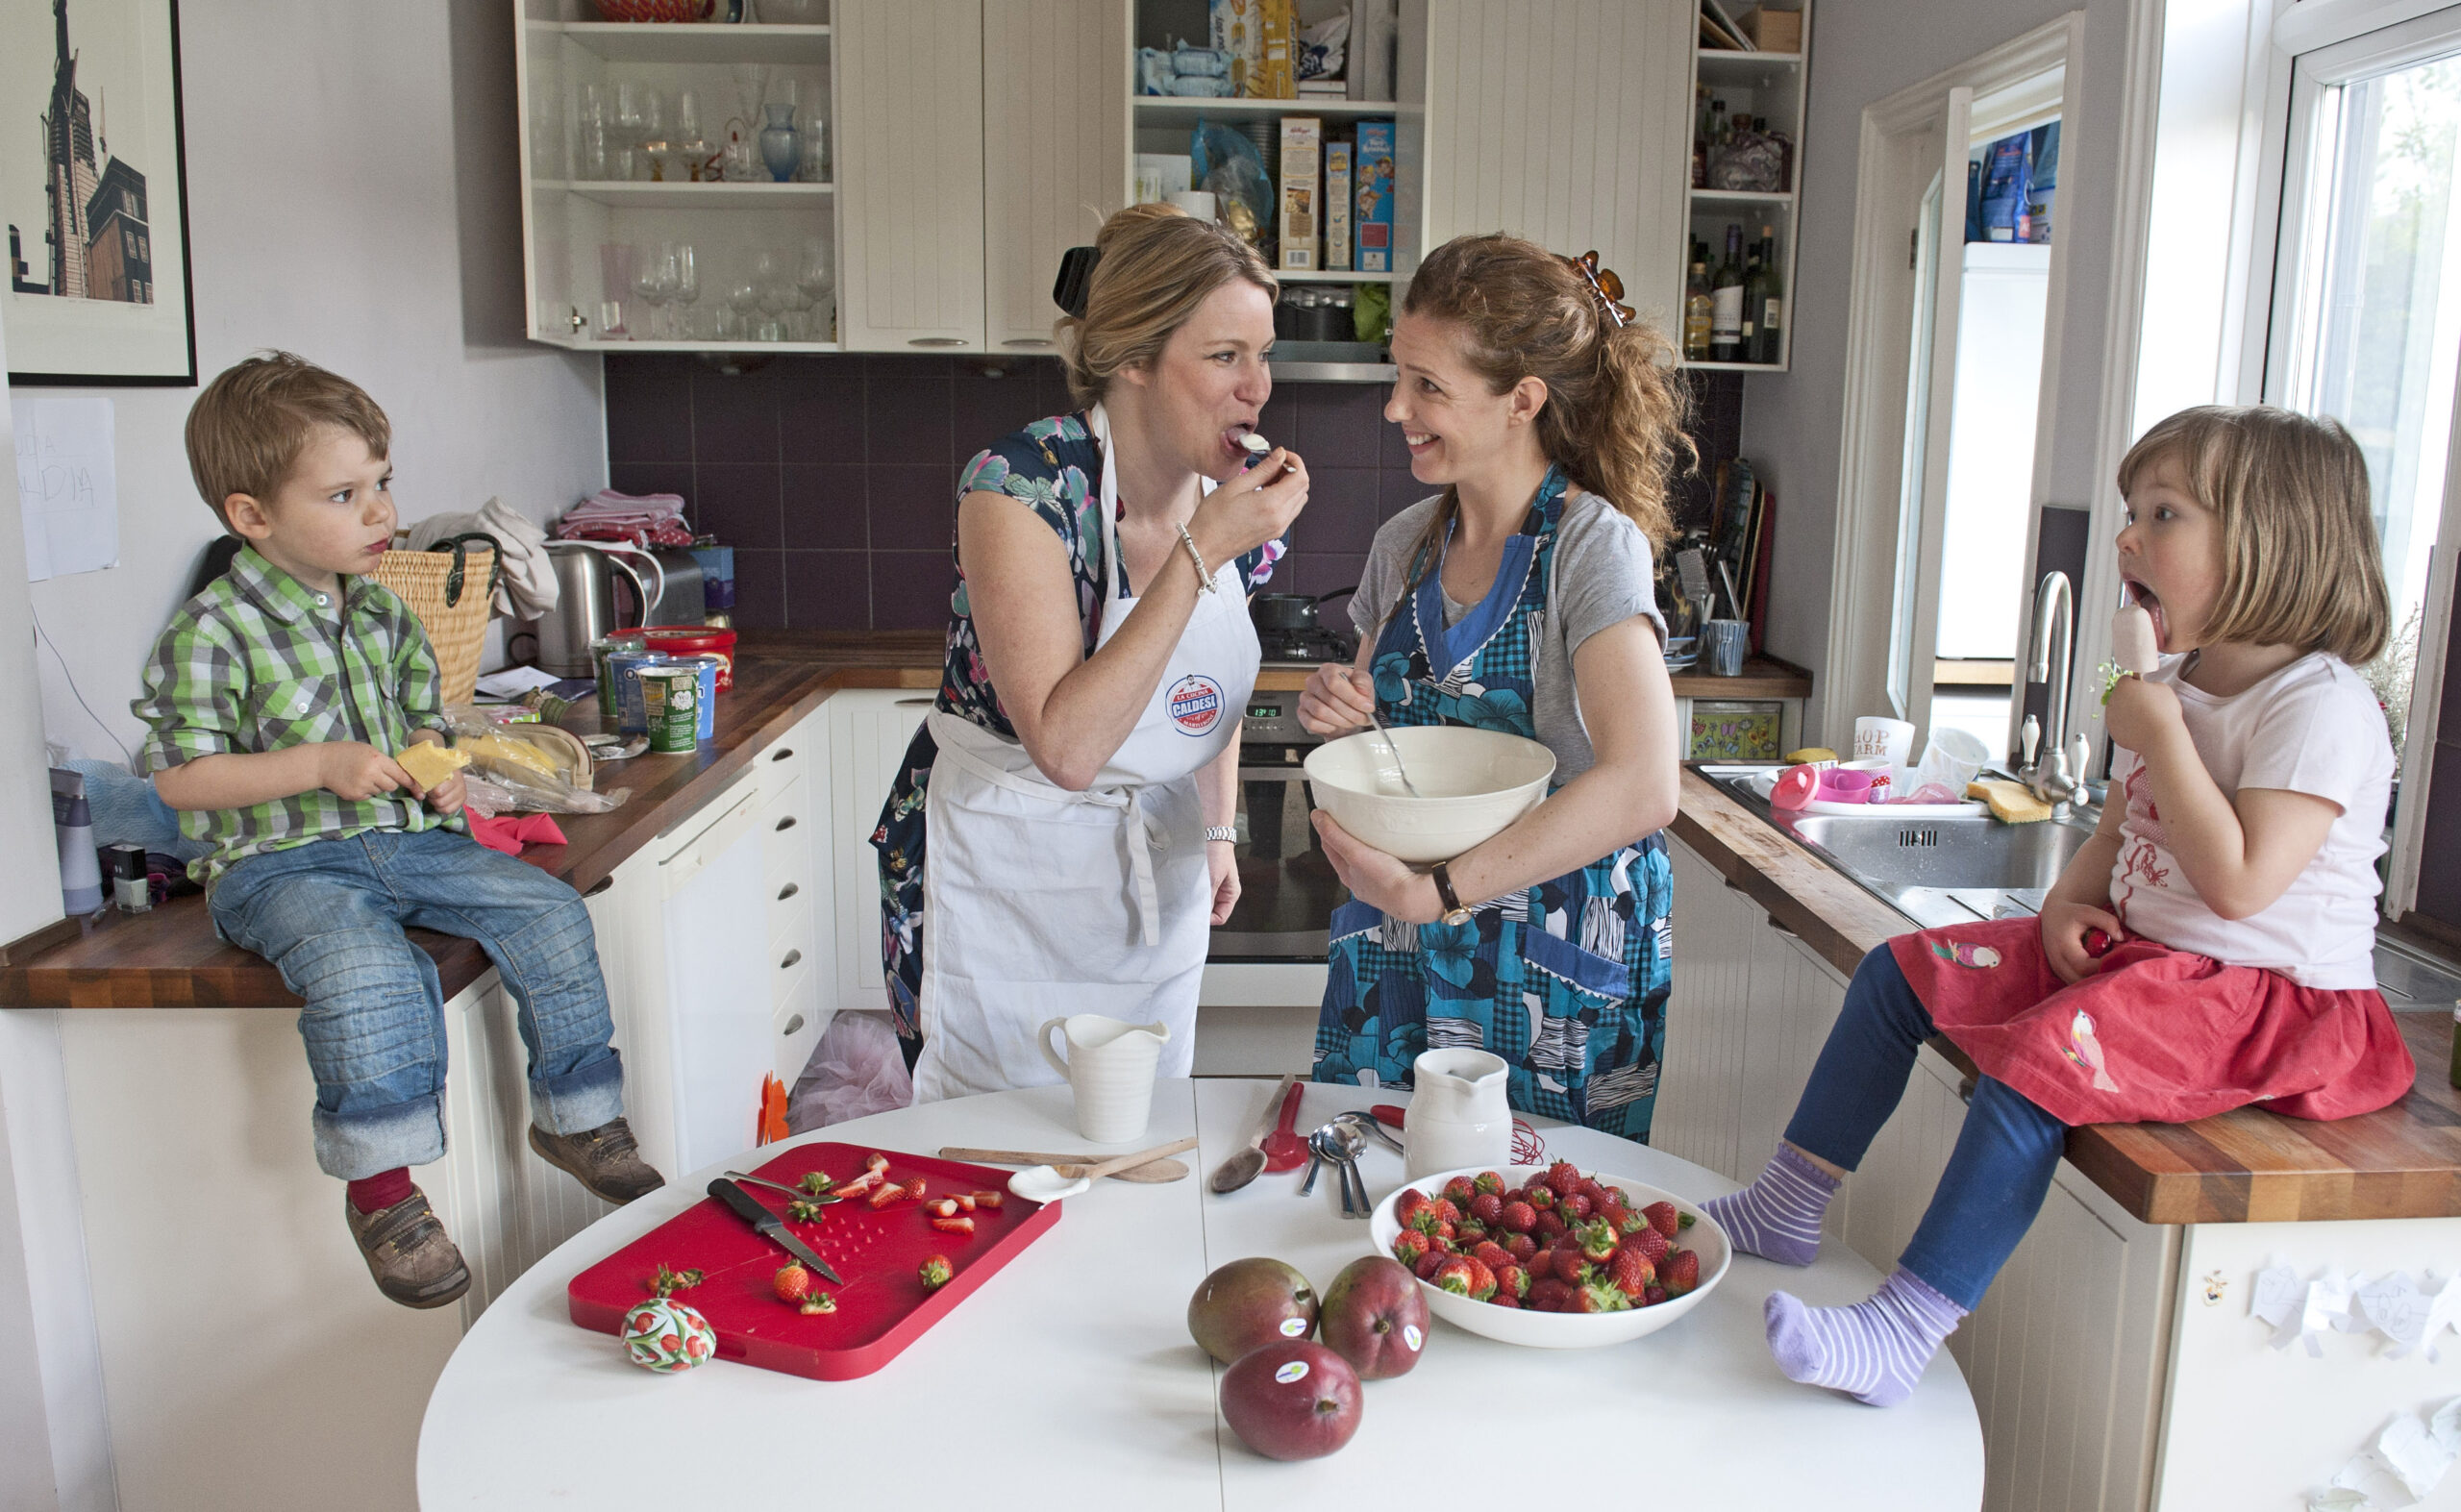 Two mums in a kitchen making lollies with their children